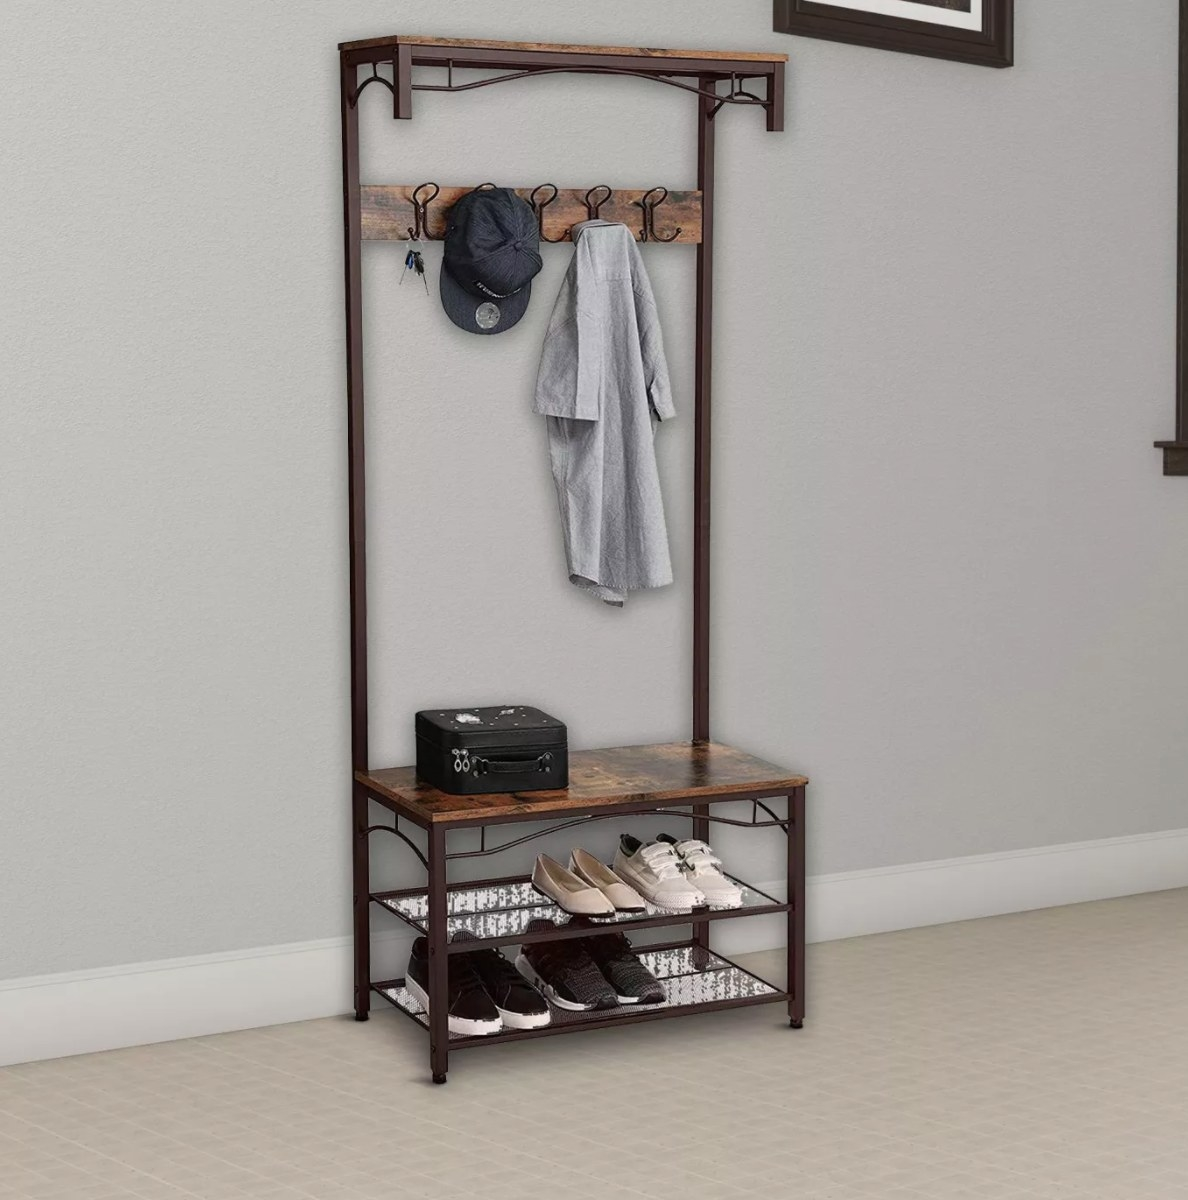 Black and brown metal and wood coat rack and bench entryway furtniture